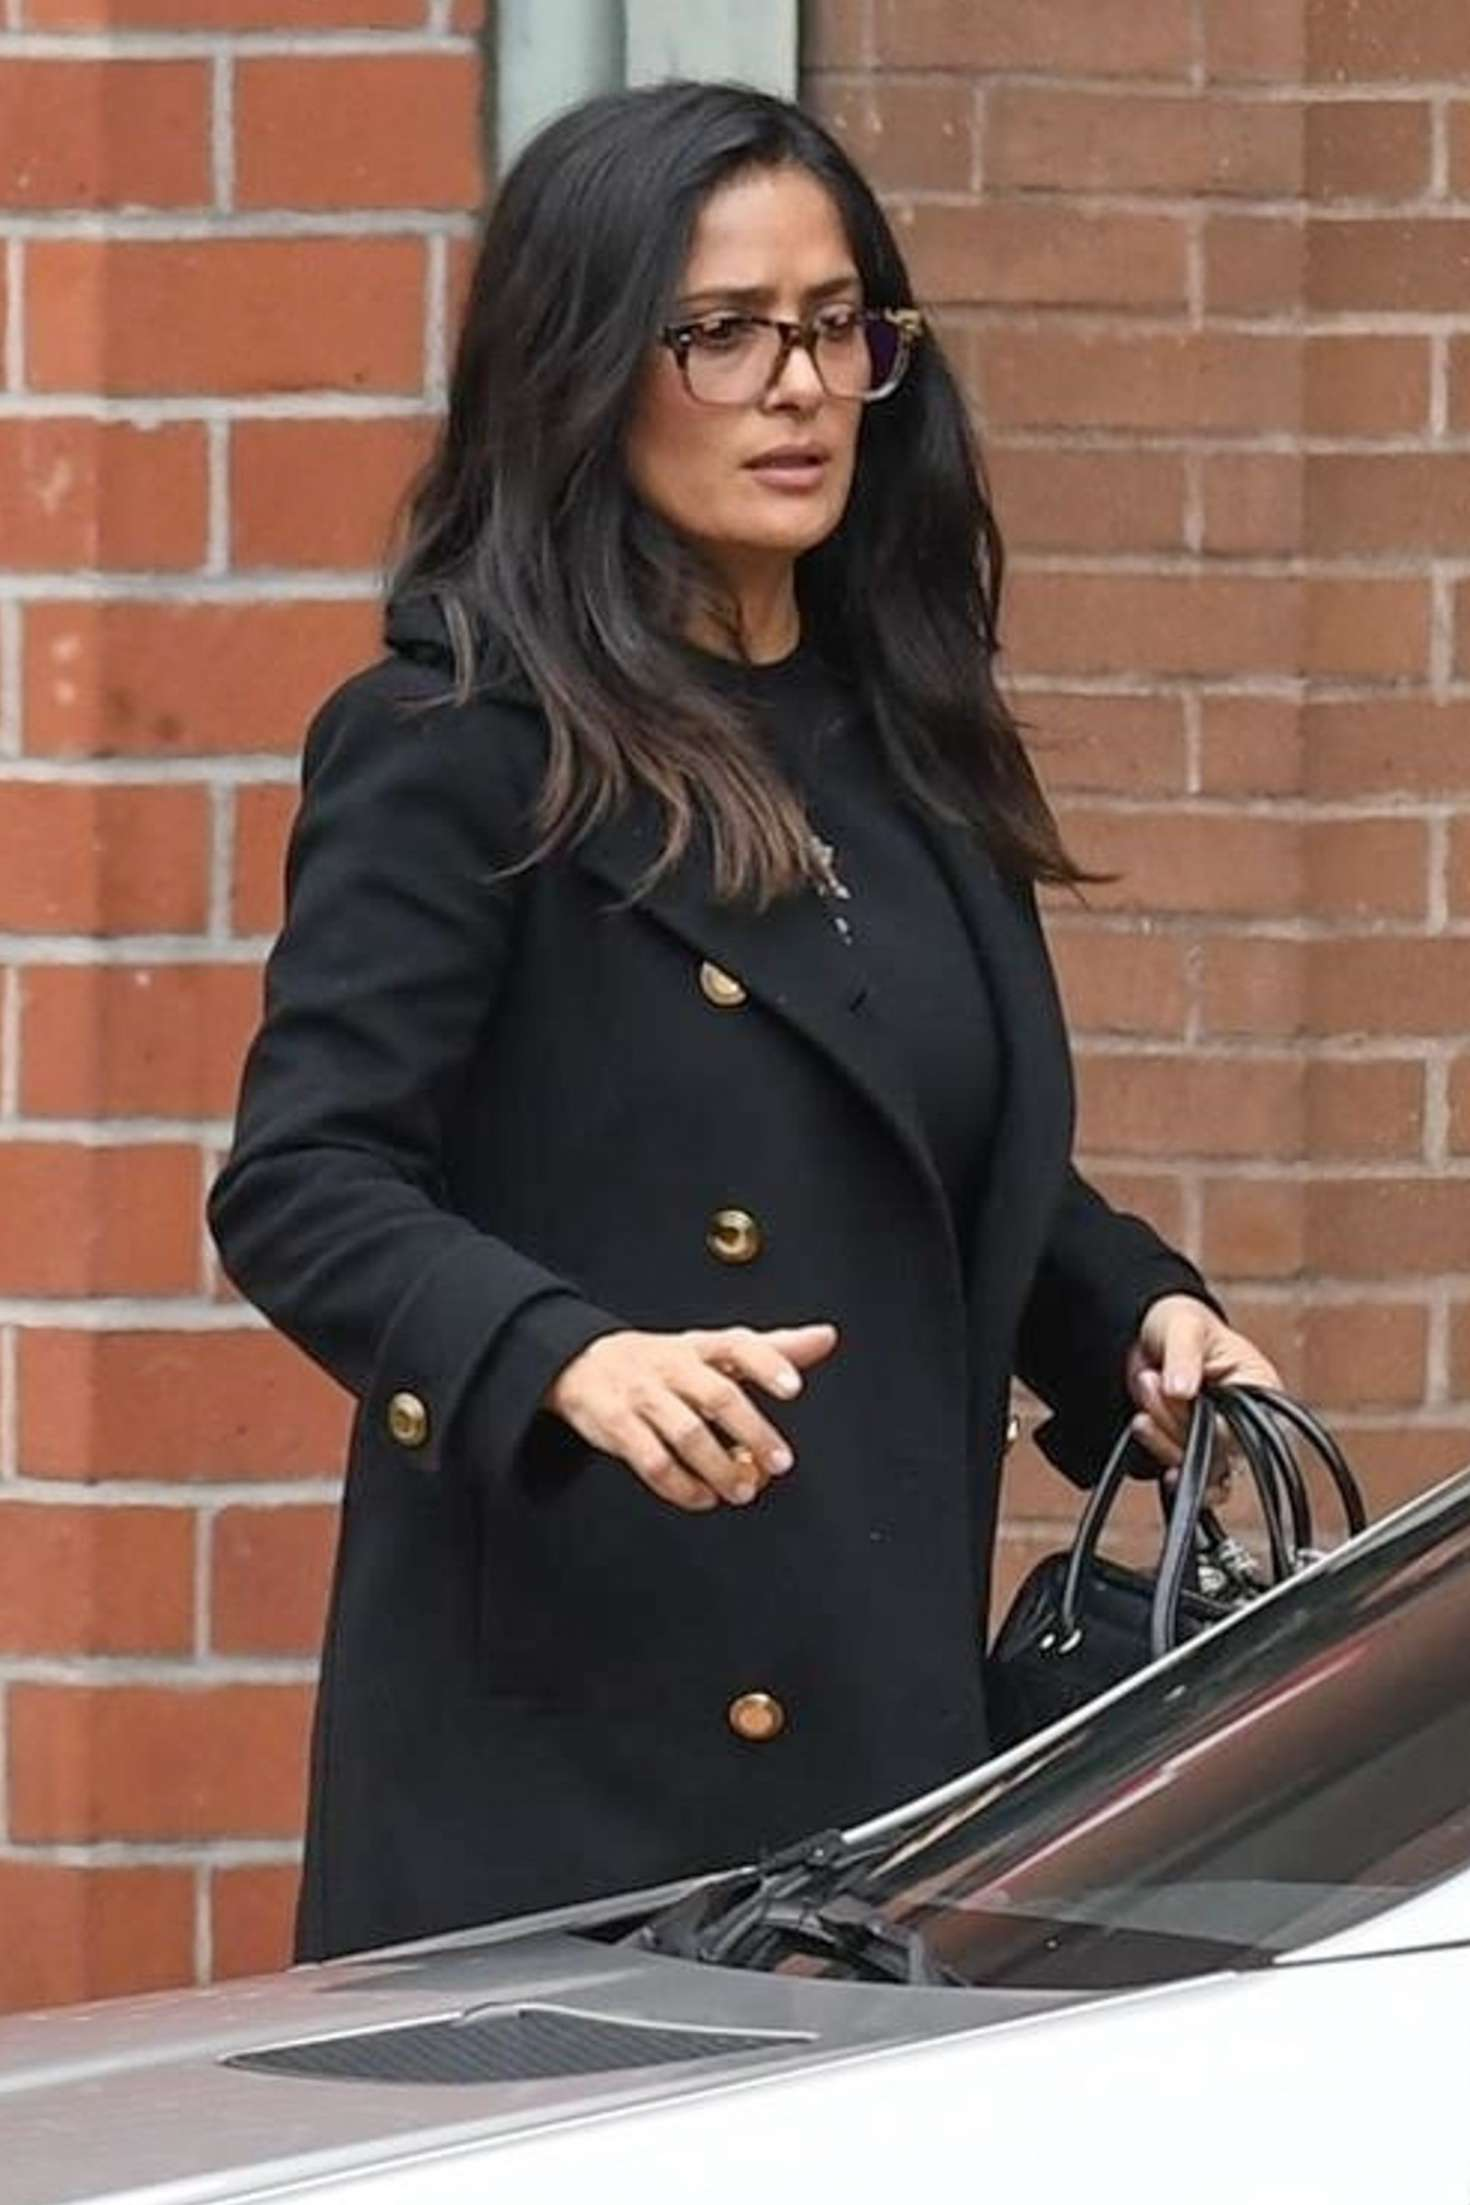 Salma Hayek Leaves A Medical Building In Beverly Hills